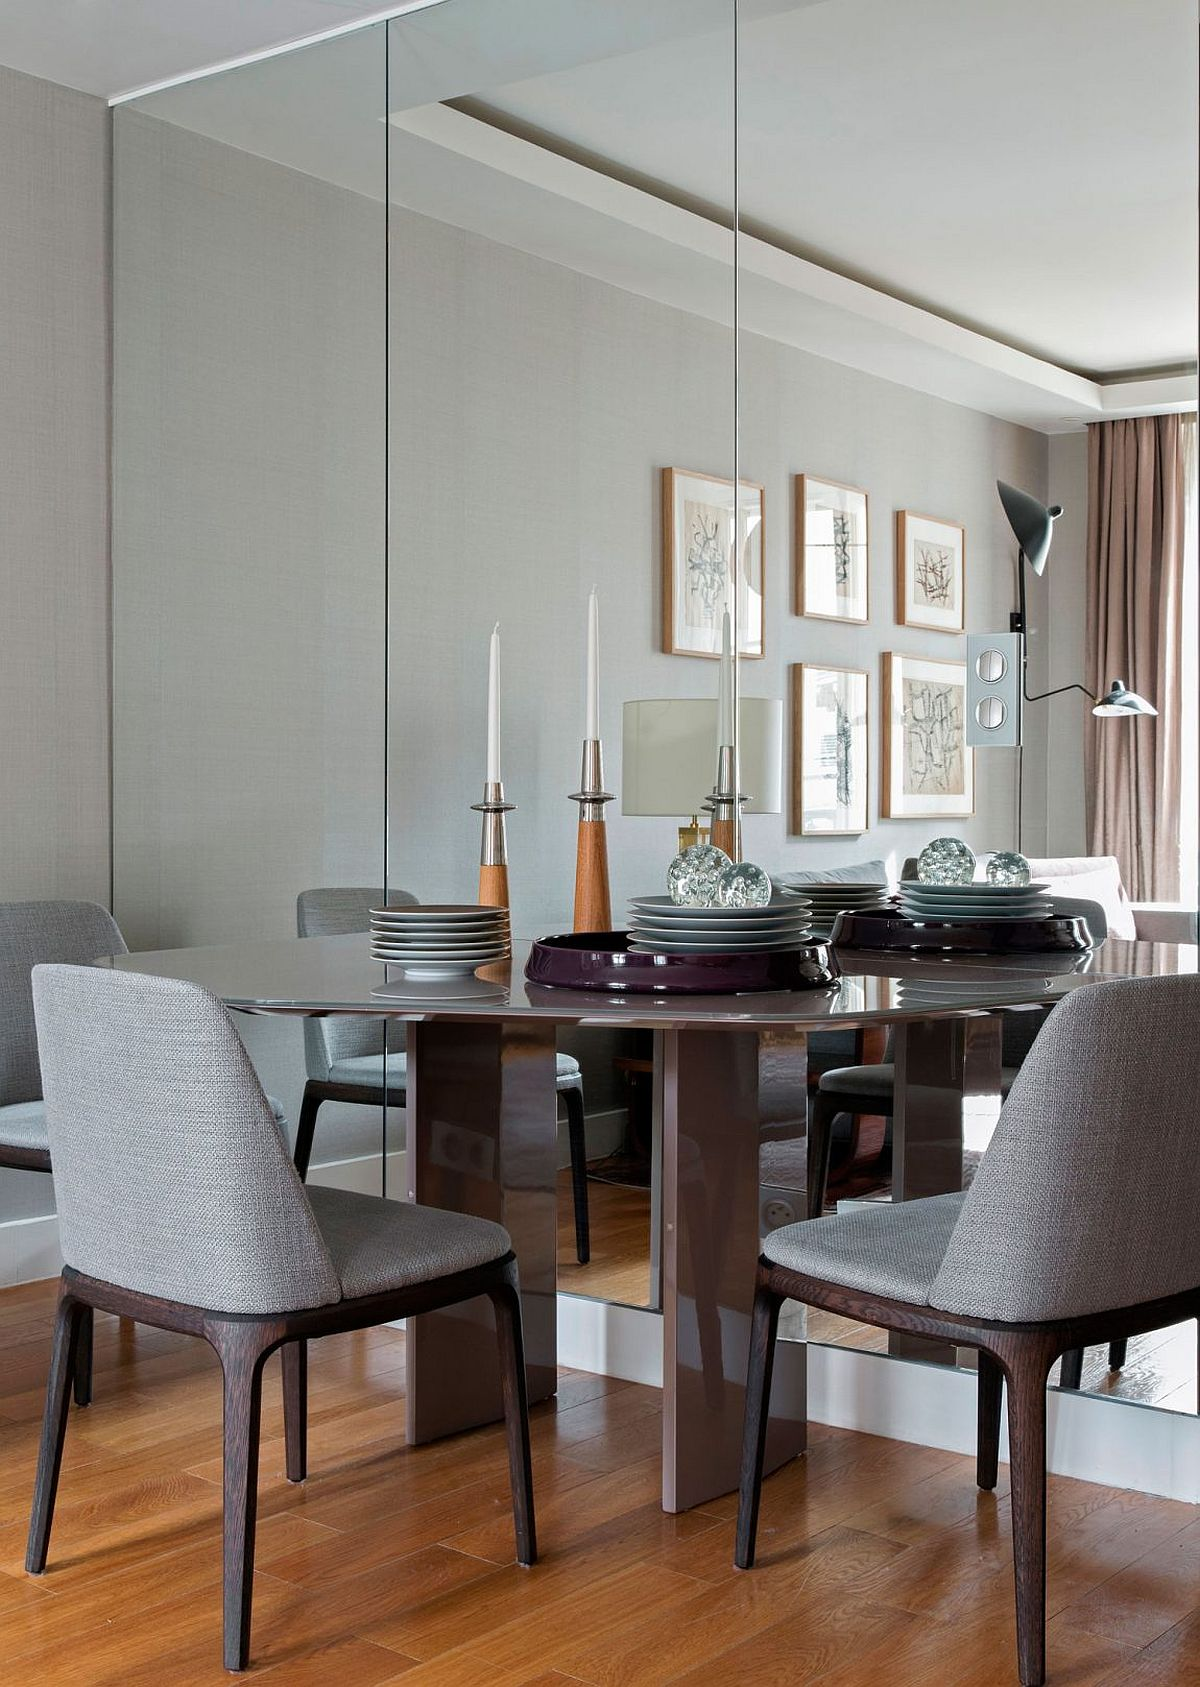 Enlarge the visual space of a room with mirrored walls